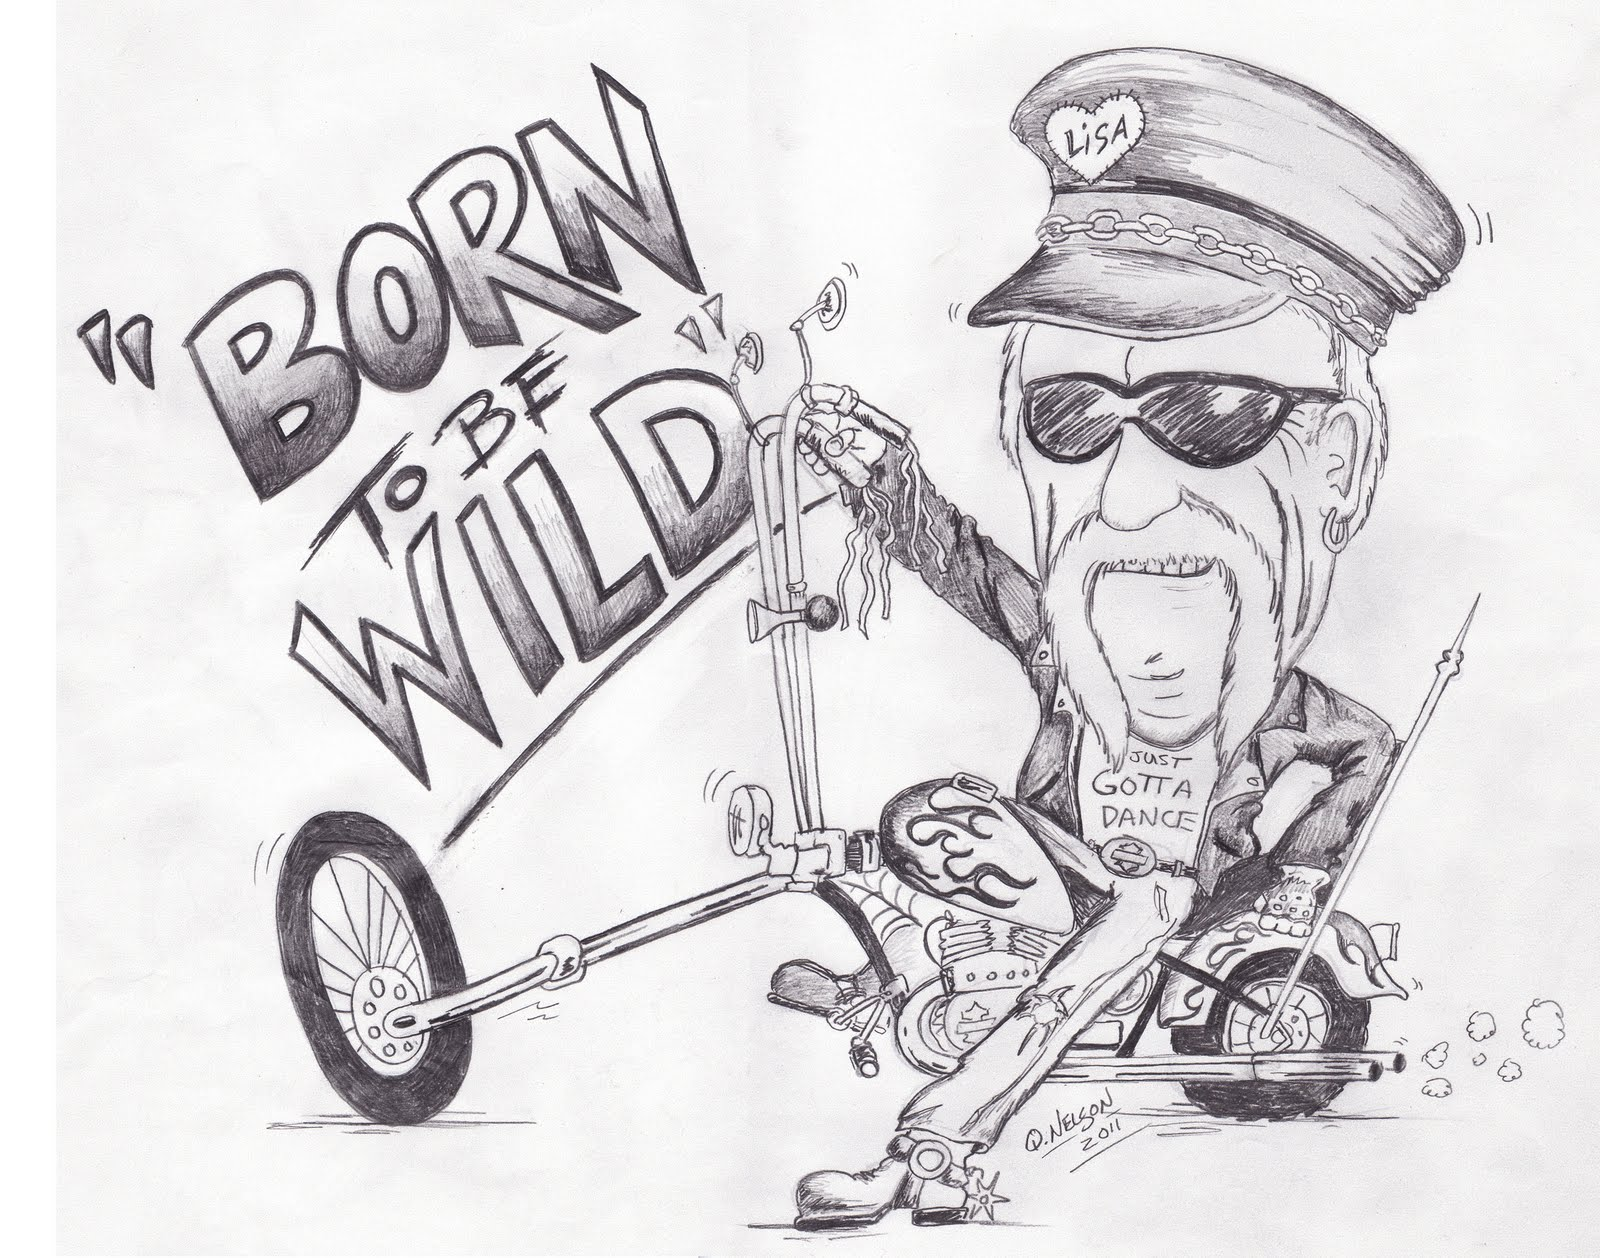 text born to be wild